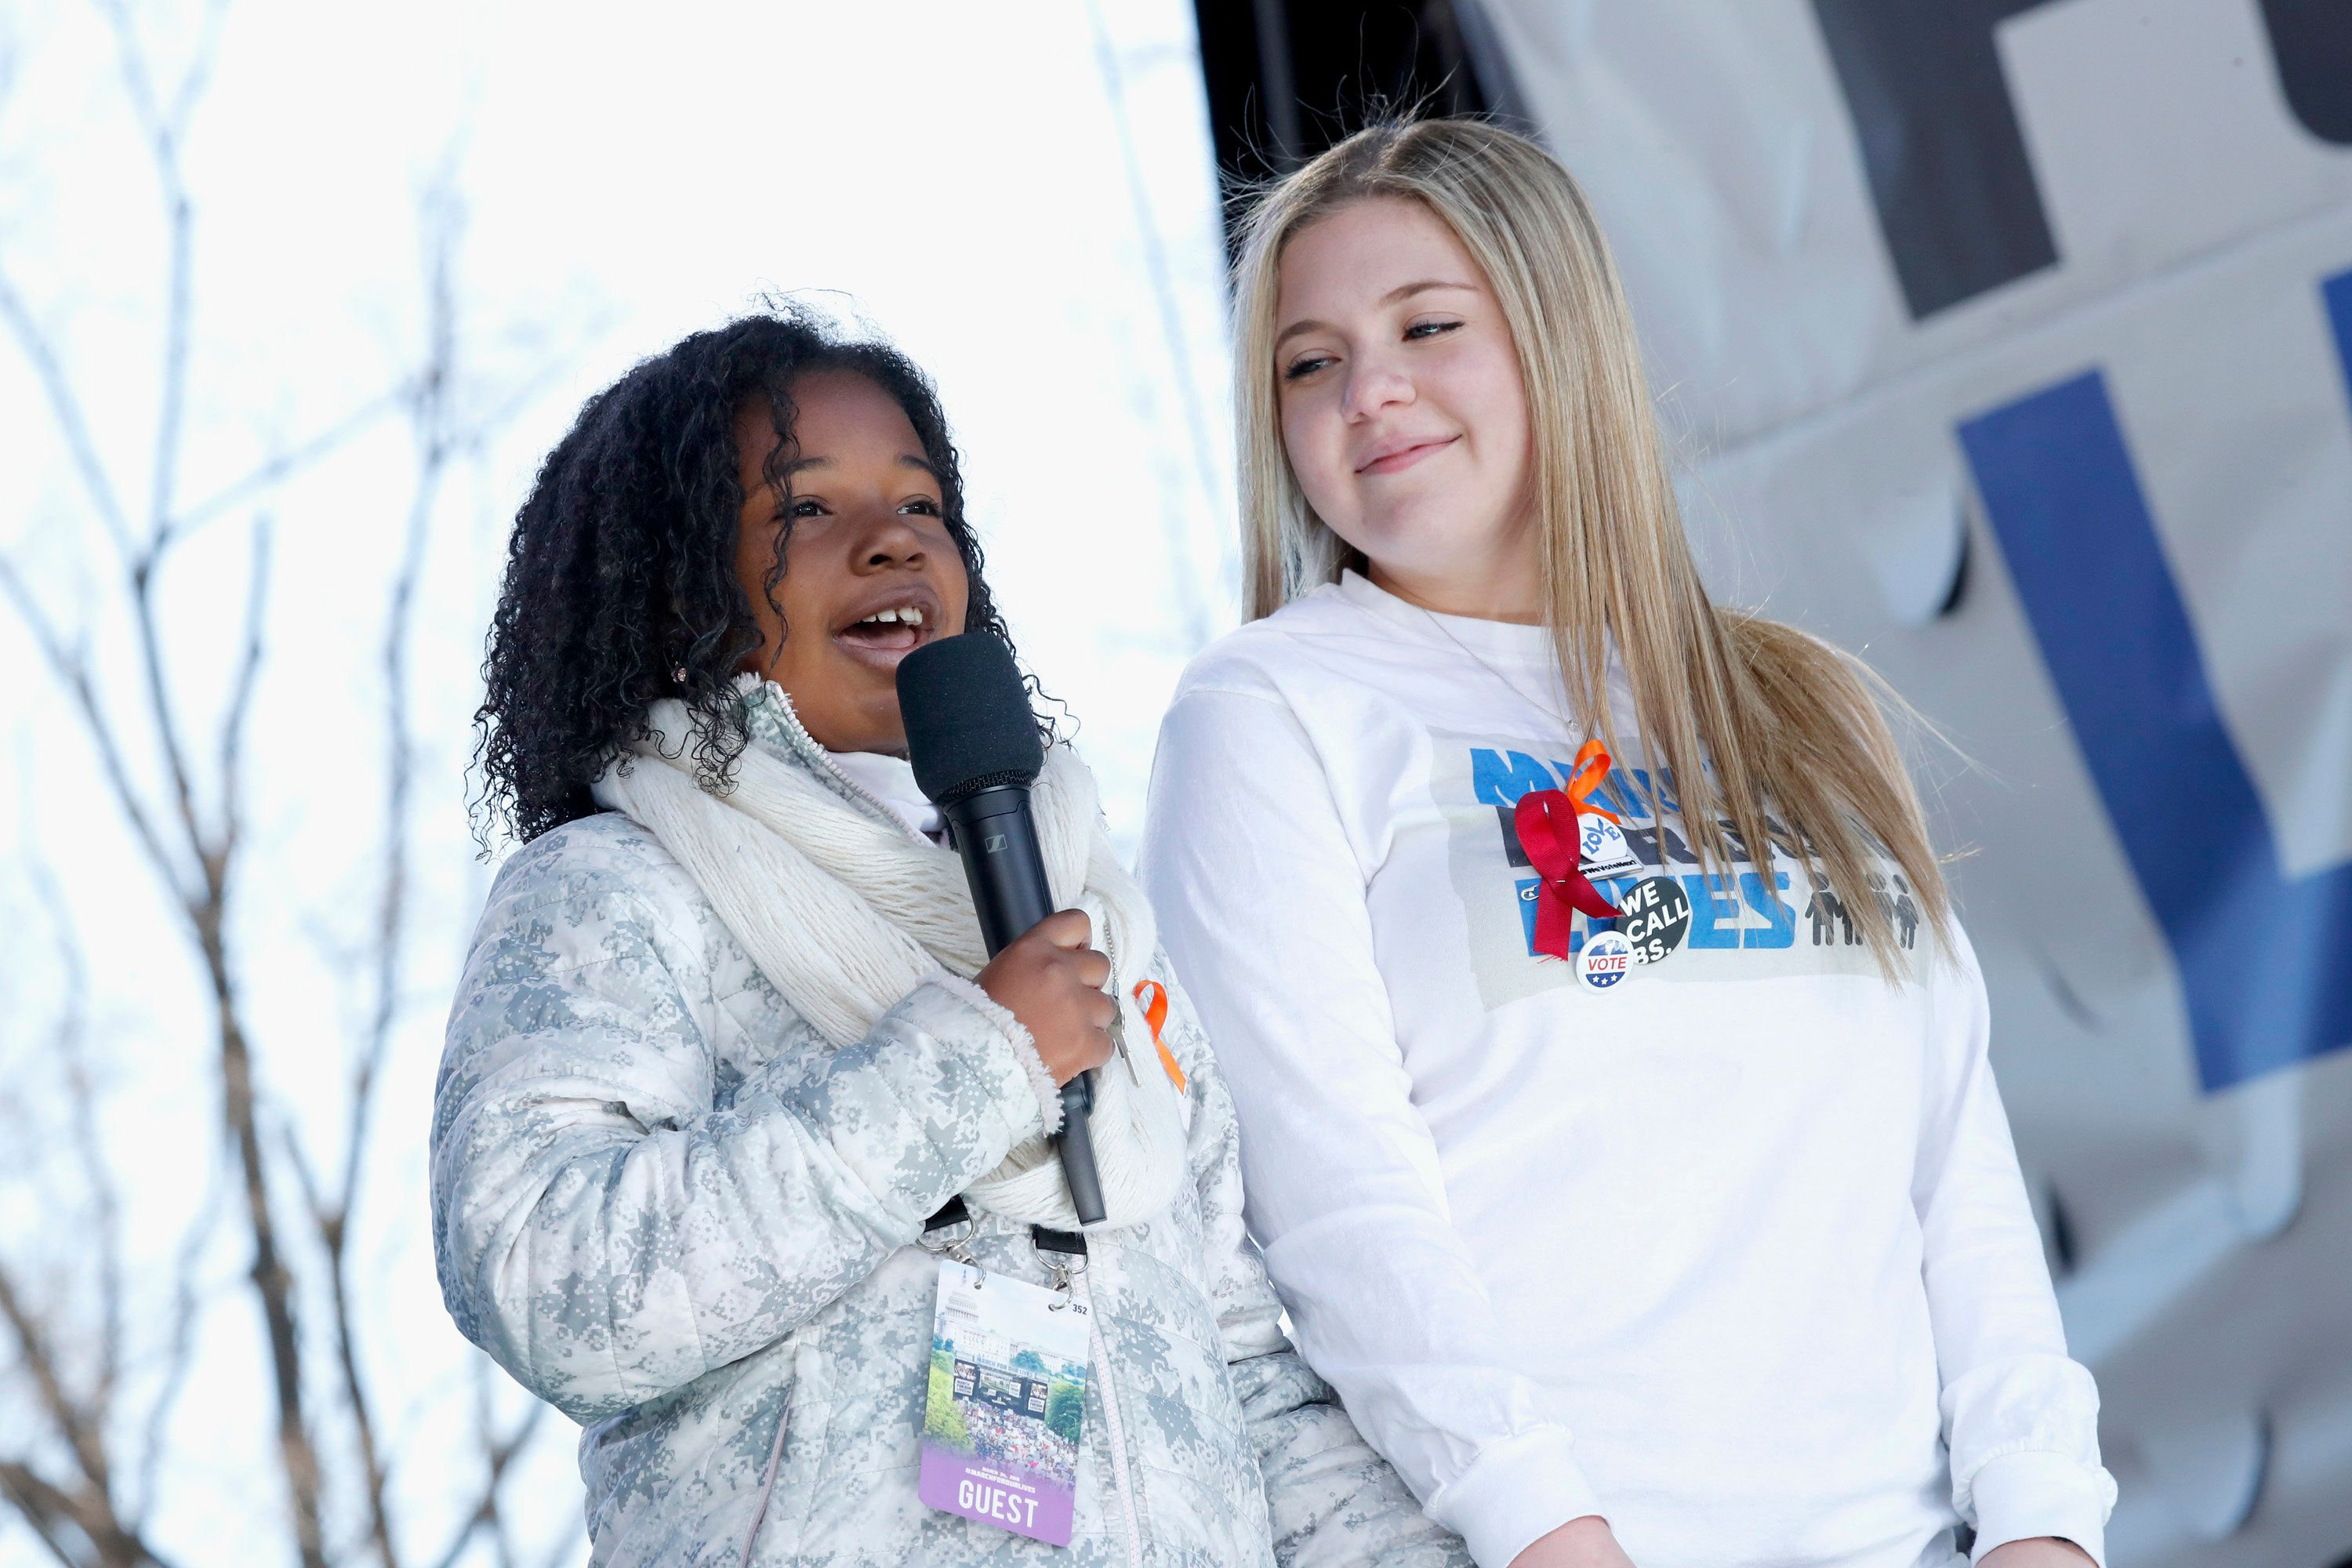 WASHINGTON, DC - MARCH 24:  Yolanda Renee King and Jaclyn Corin speak onstage at March For Our Lives on March 24, 2018 in Washington, DC.  (Photo by Paul Morigi/Getty Images for March For Our Lives)